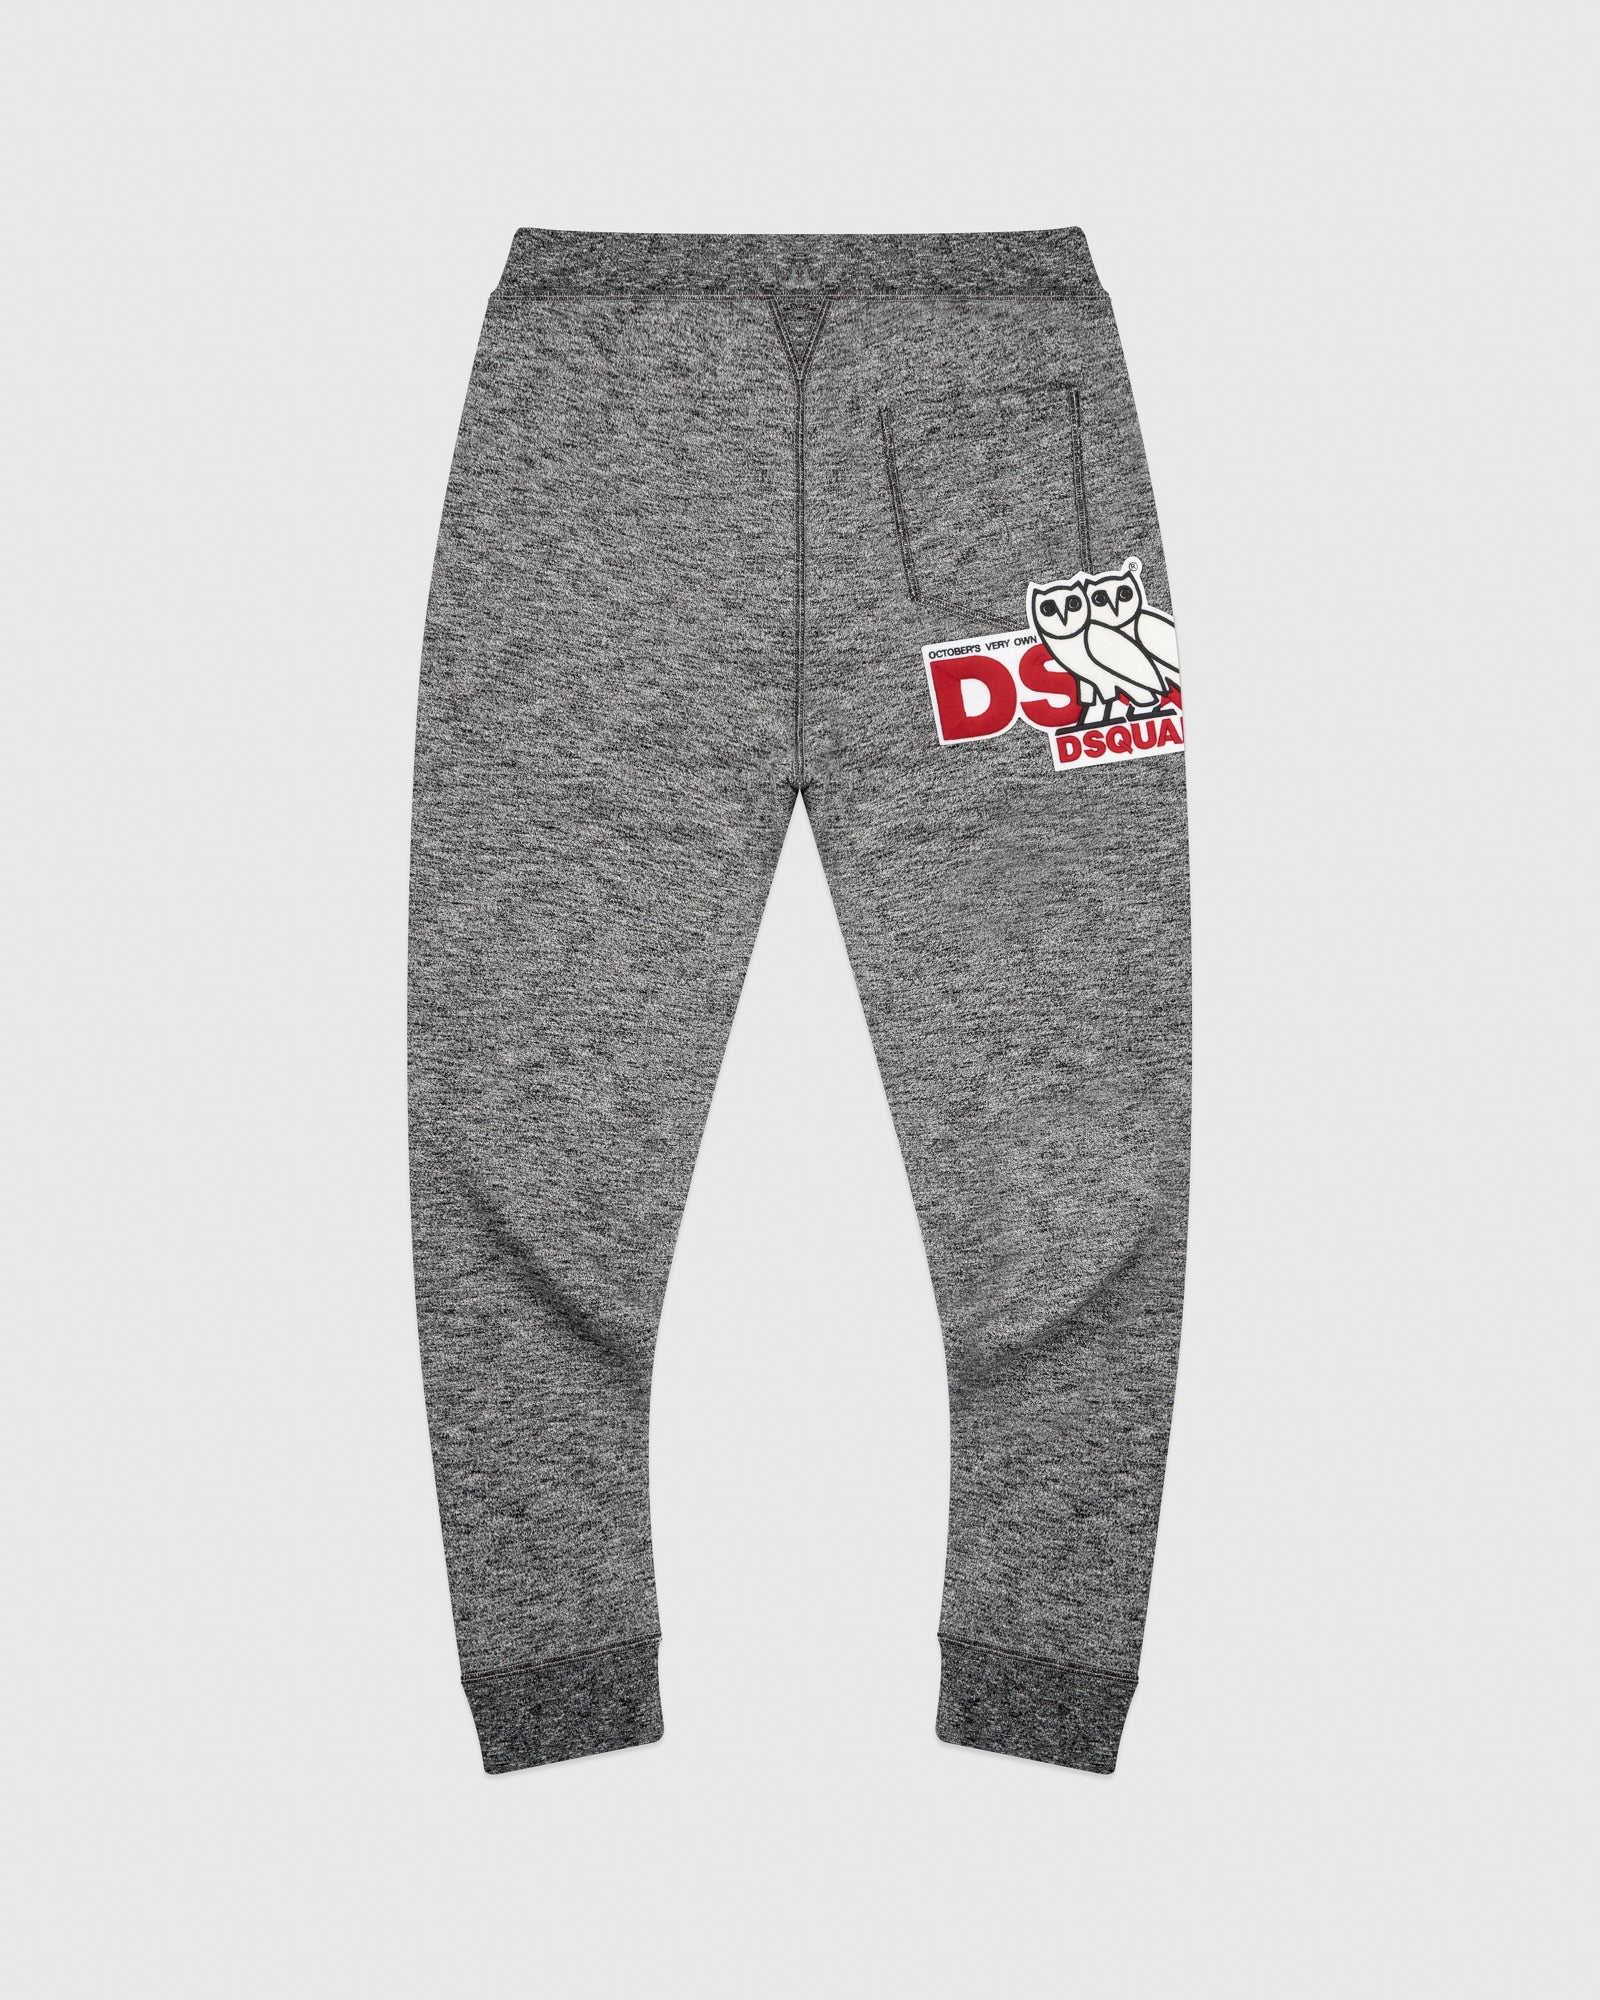 OVO x DSQUARED2 SWEATPANT - GREY IMAGE #4